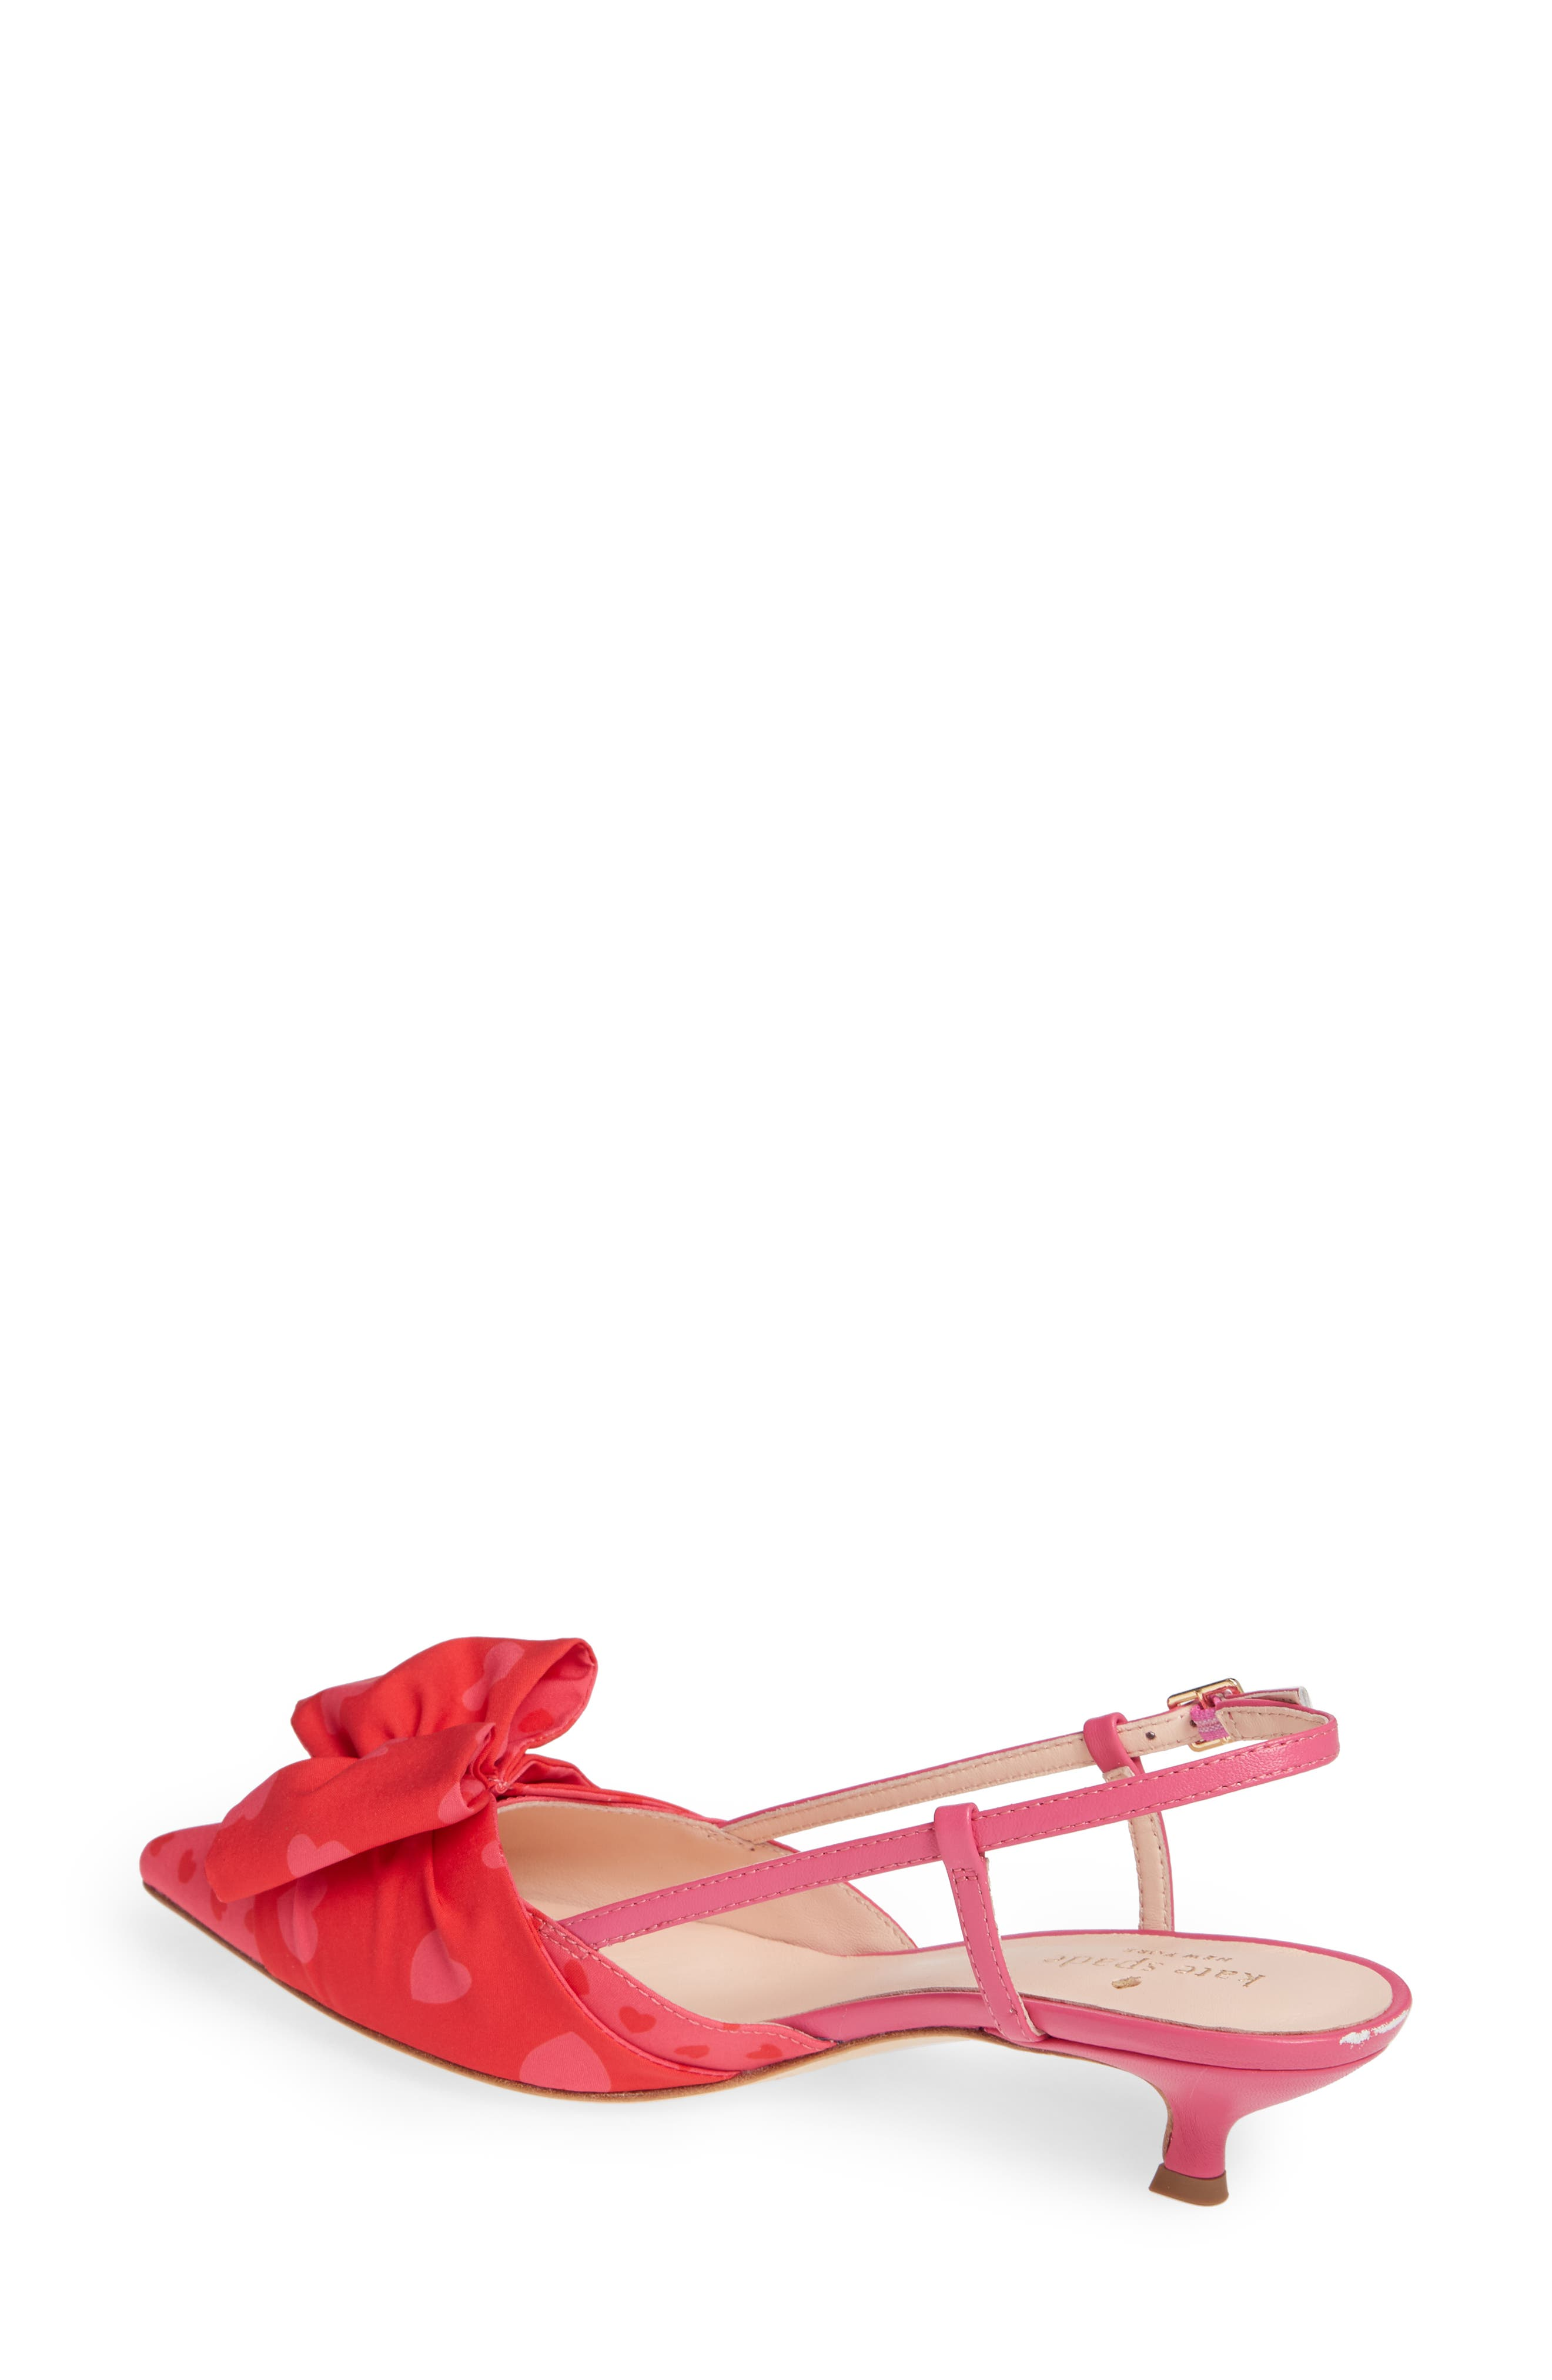 daxton slingback pump,                             Alternate thumbnail 2, color,                             BEGONIA/ ENGINE RED HEART